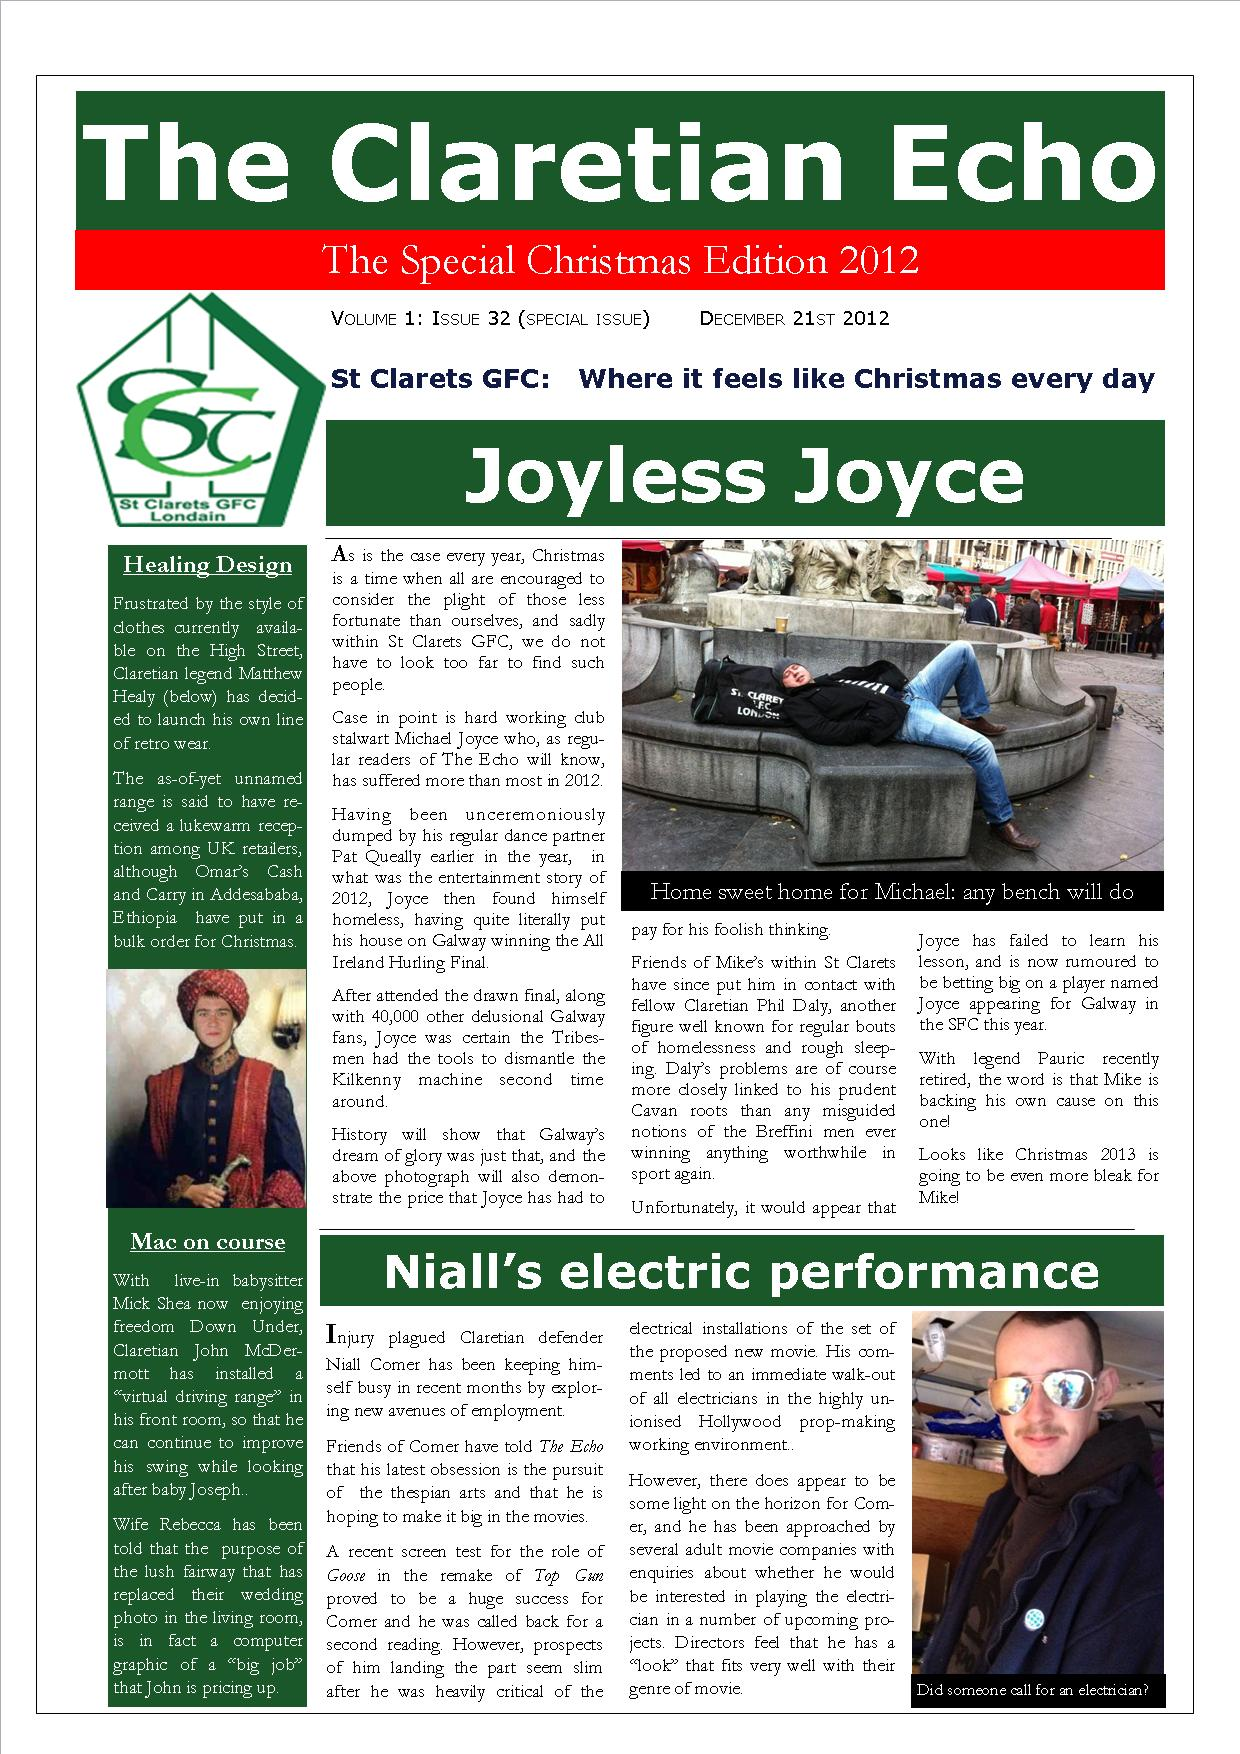 Claretian Echo Issue 32 - Christmas Edition. The weekly newsletter from St Clarets GFC in London. London's best GAA club. A Gaelic football club to be proud of.